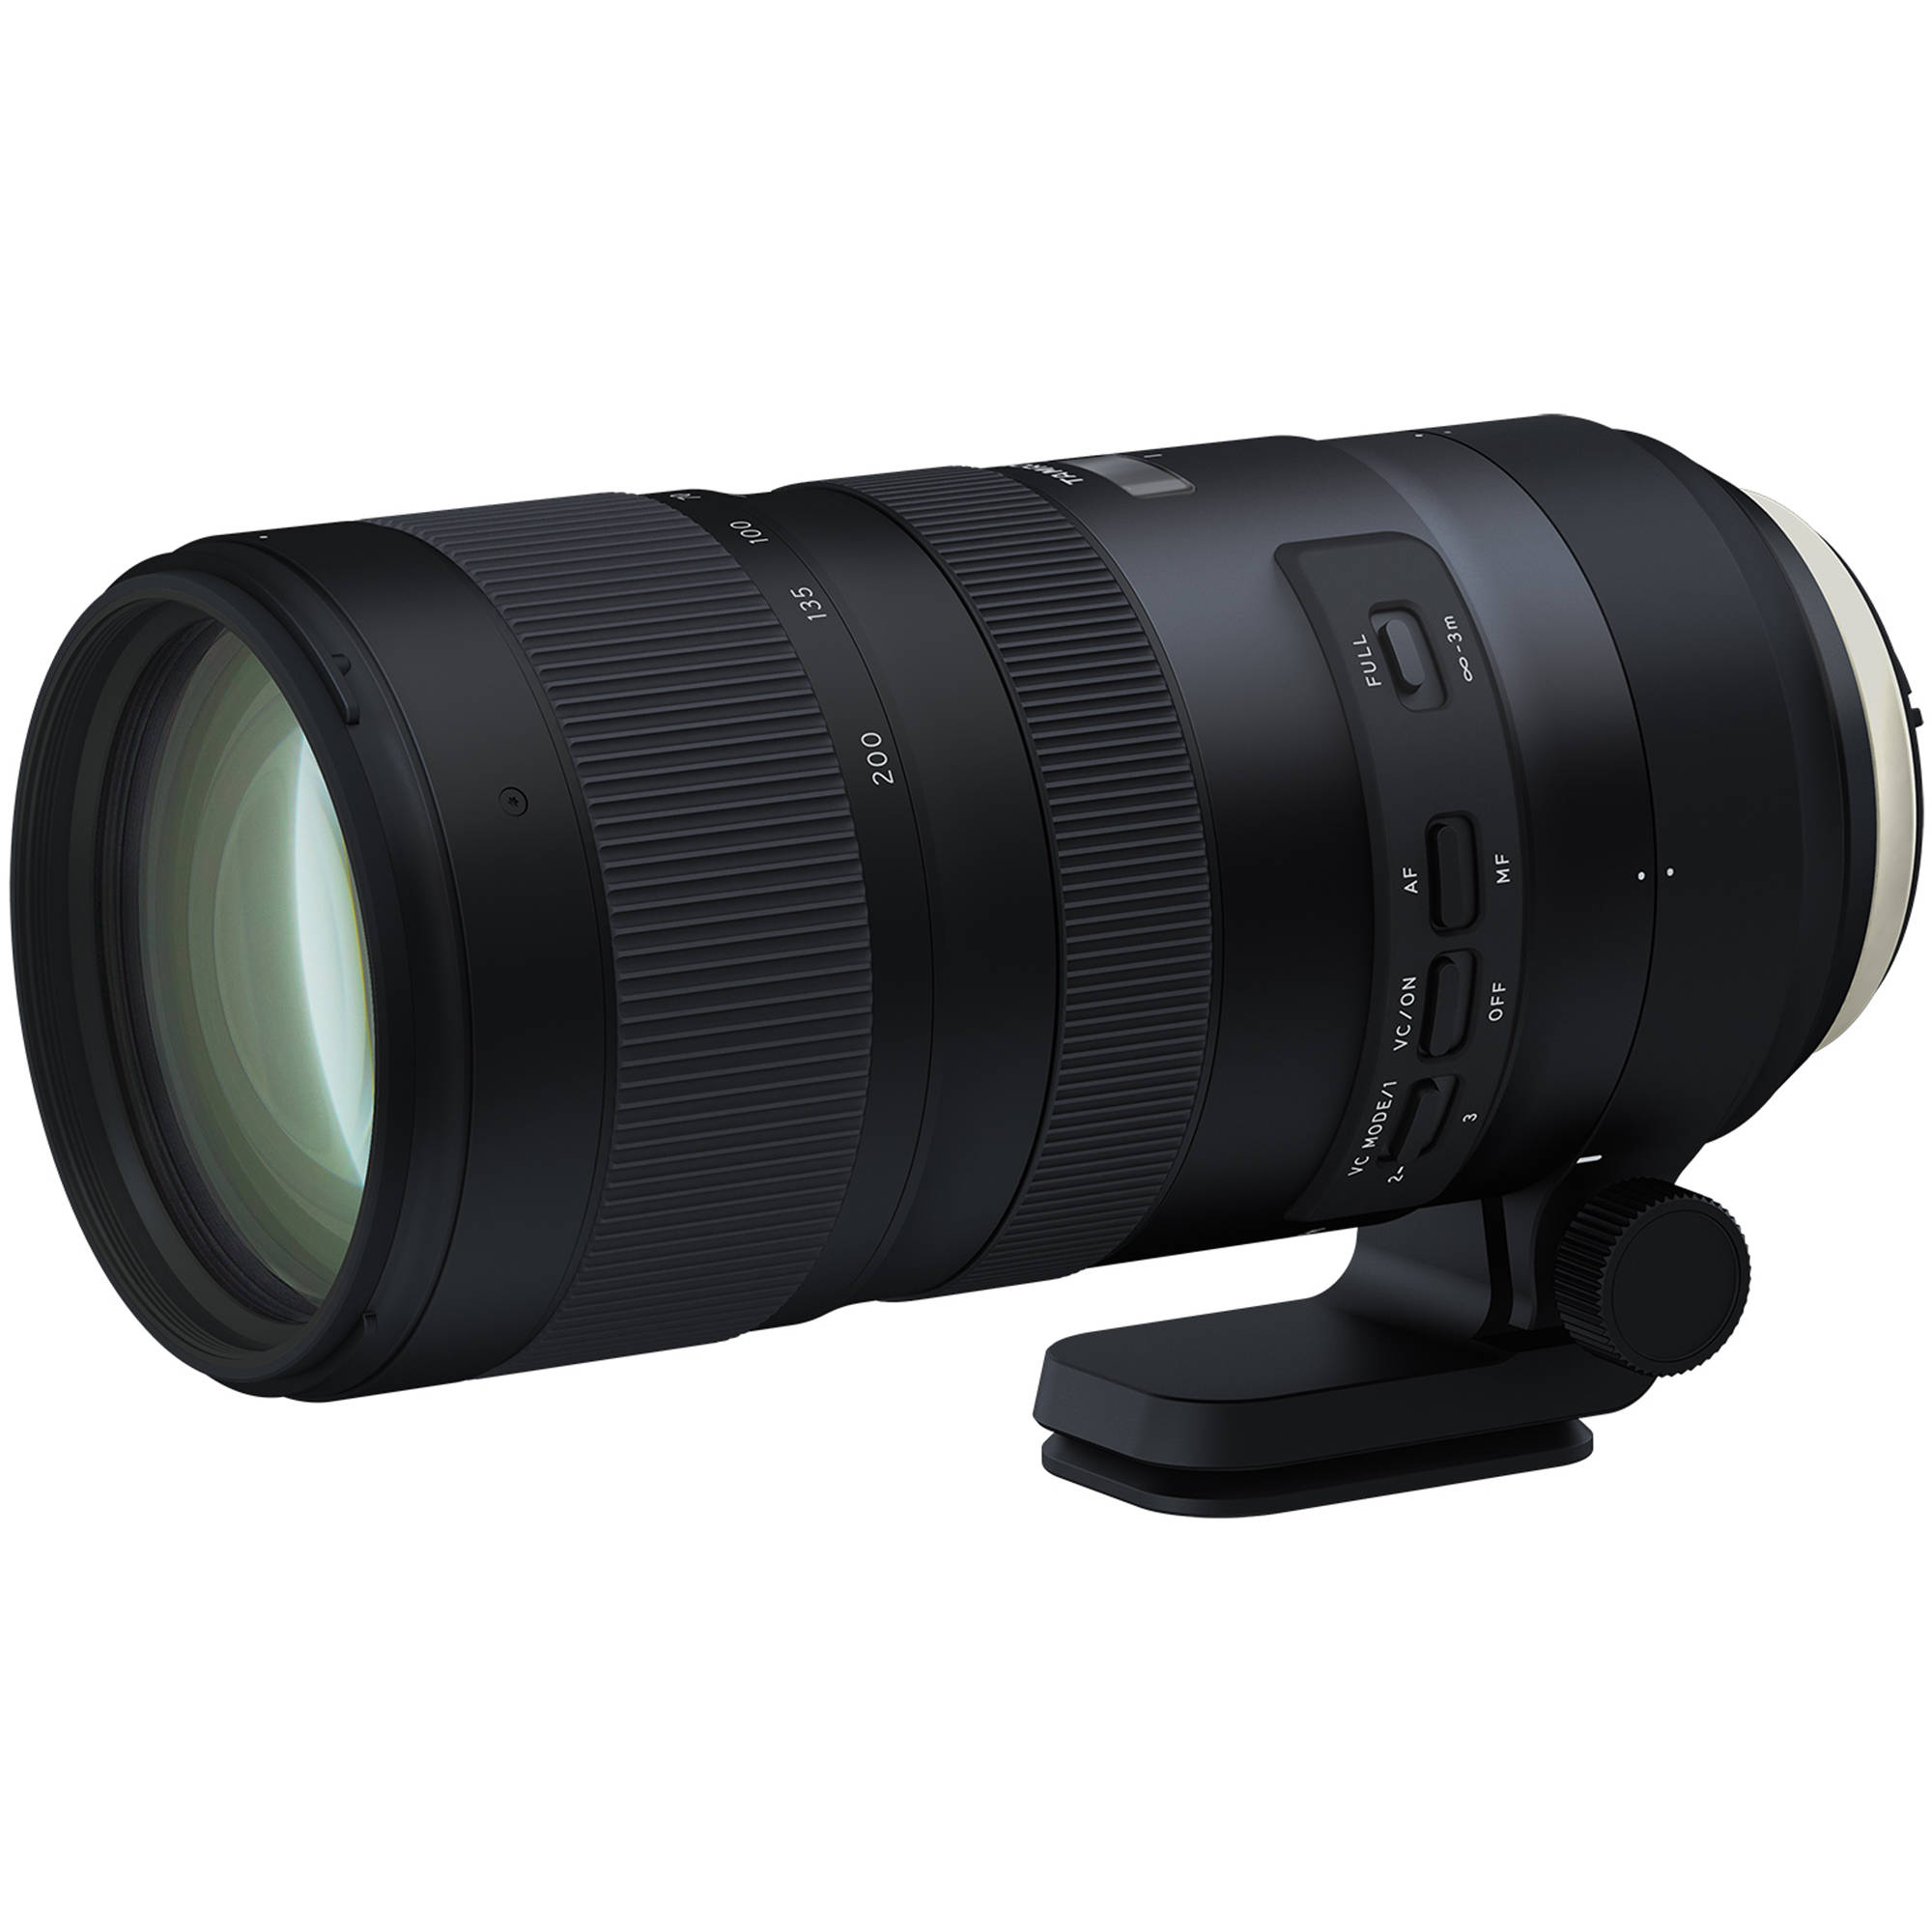 Tamron sp 70 200mm f 2 8 di vc usd g2 lens for nikon for Schuhschrank 70 x 200